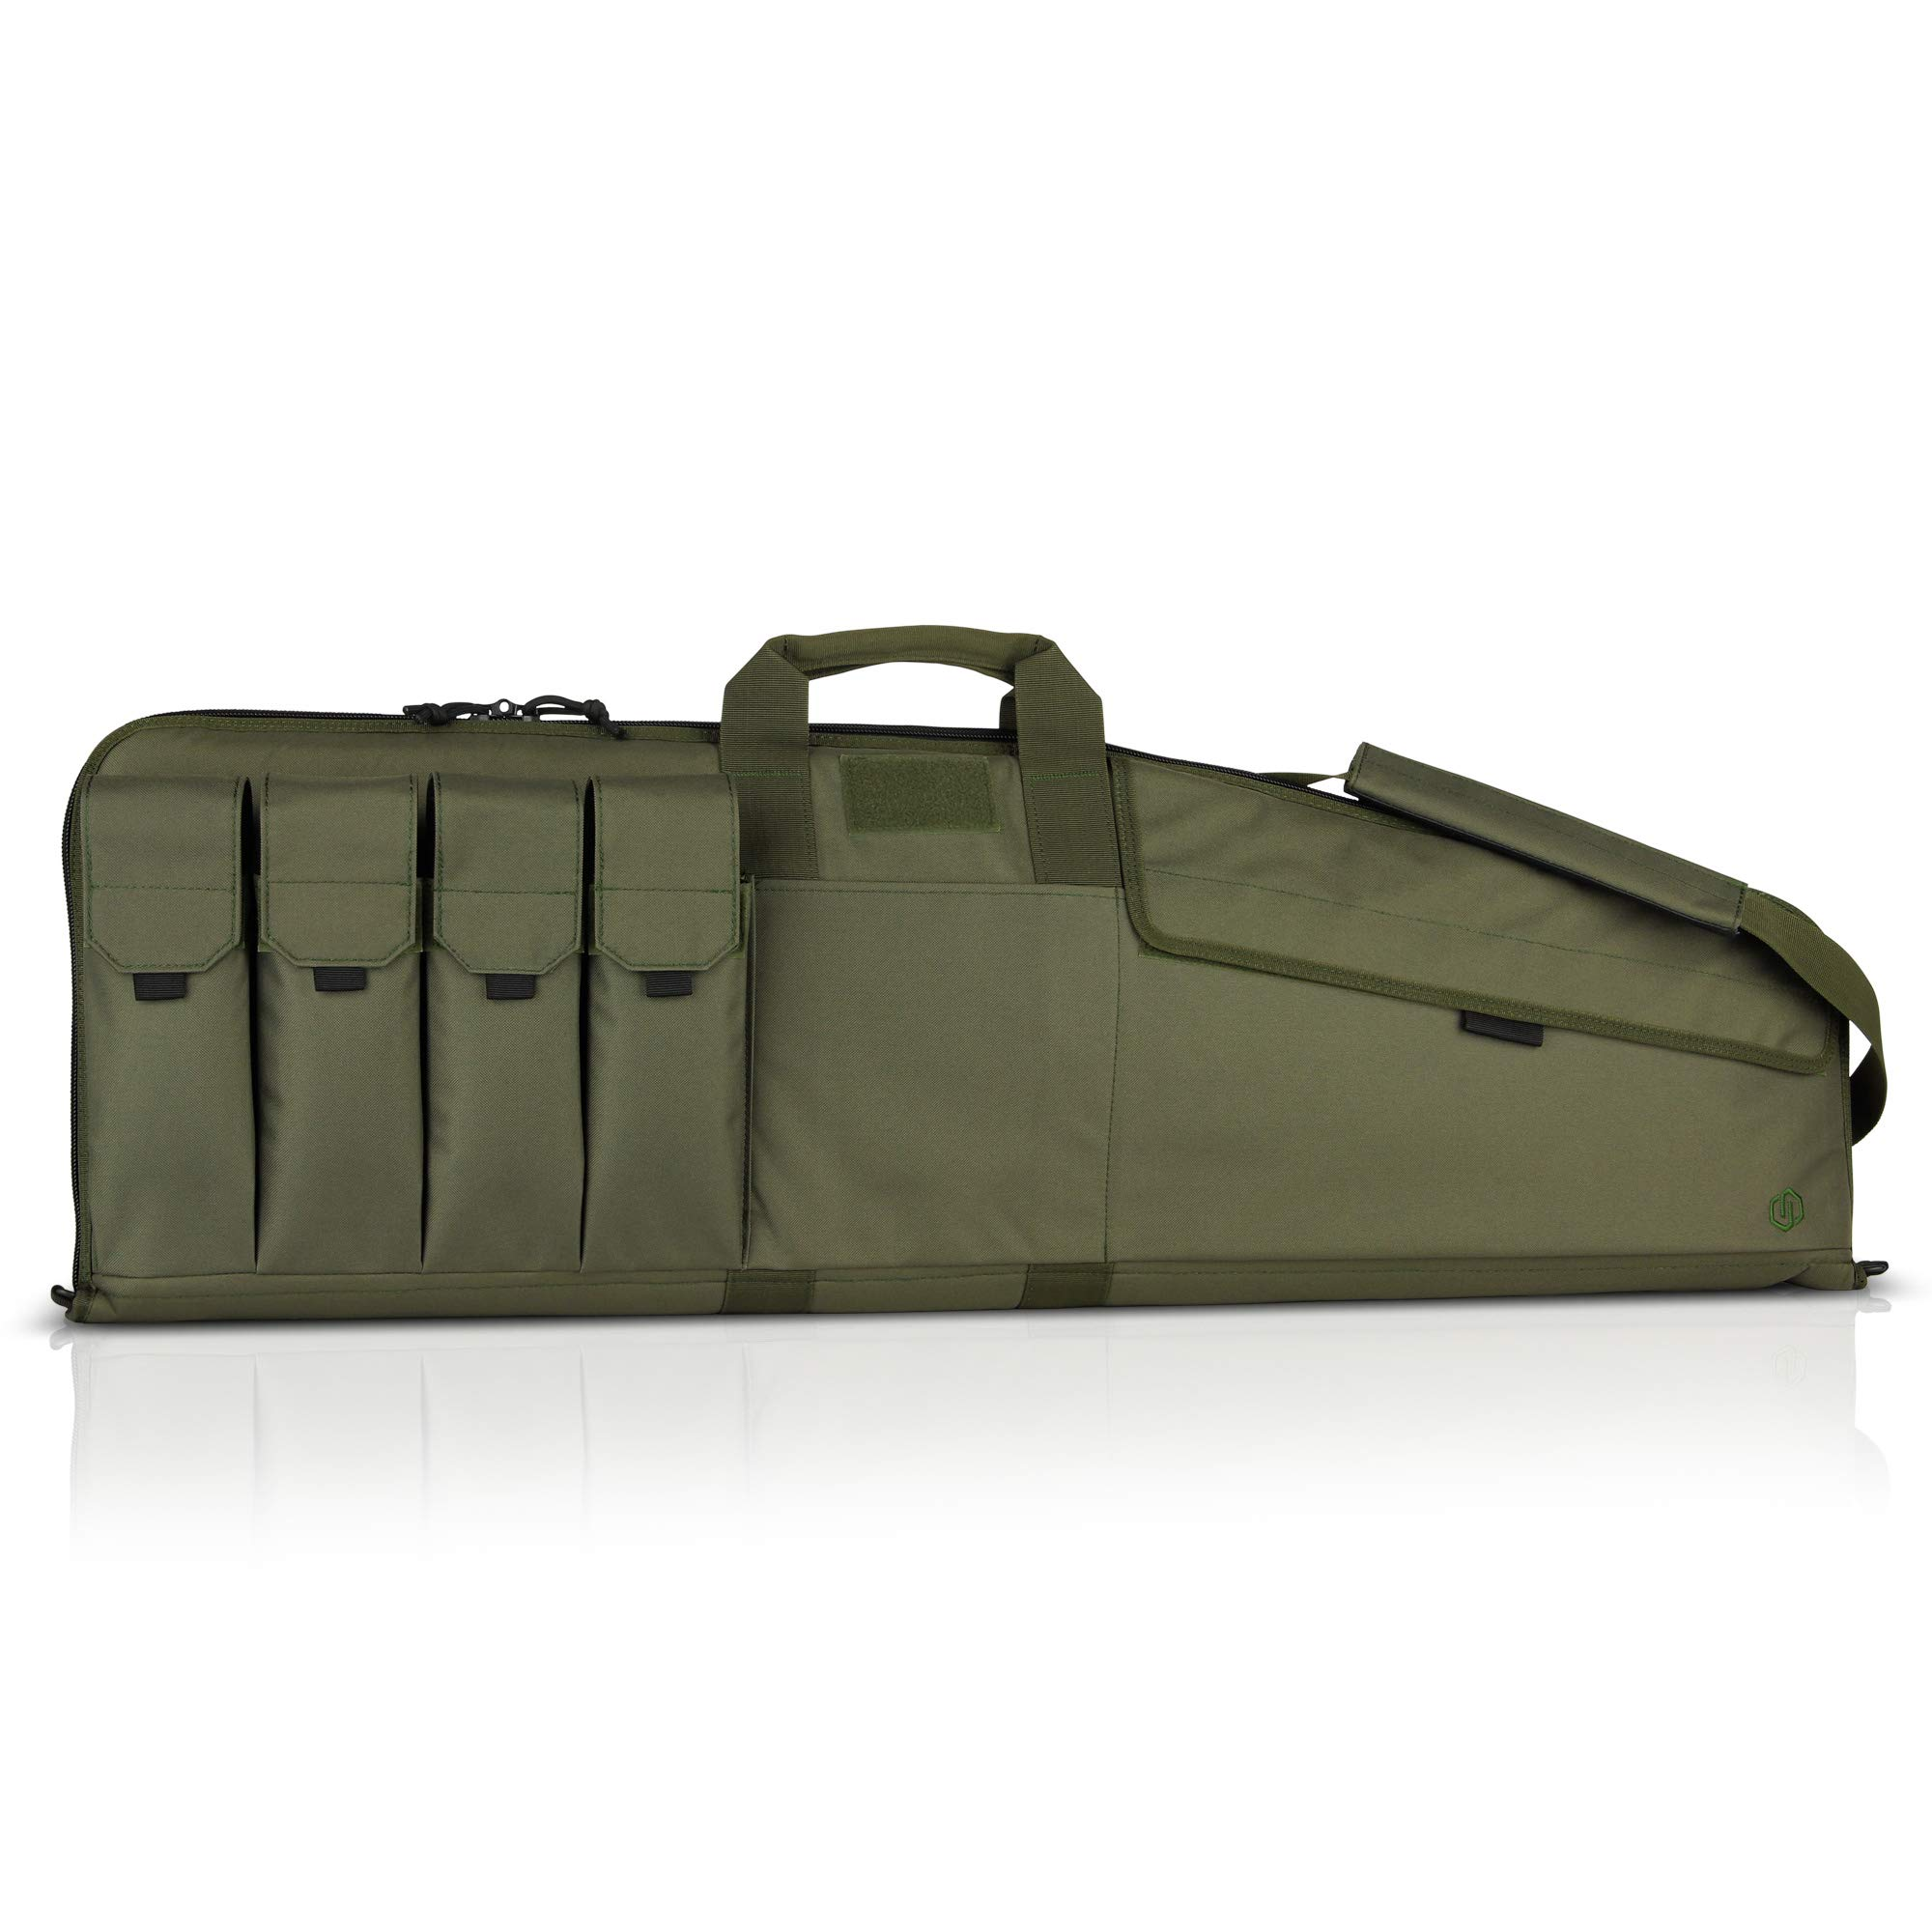 Savior Equipment The Patriot 46'' Single Rifle Gun Tactical Bag - Olive Drab Green by Savior Equipment